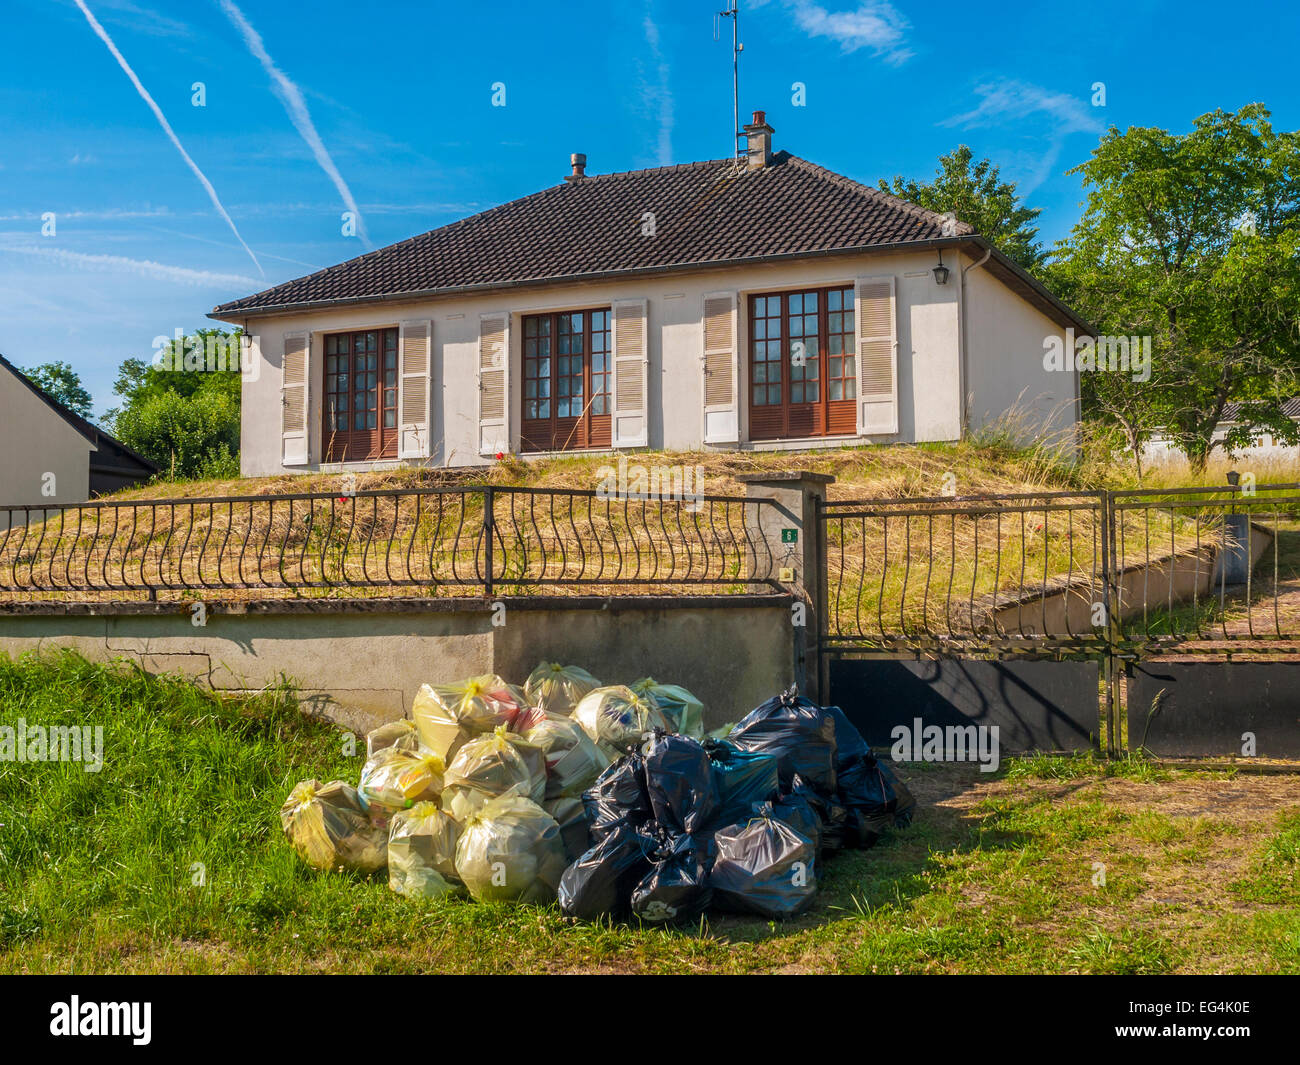 Many plastic sacks of household rubbish outside bungalow awaiting collection - France. - Stock Image